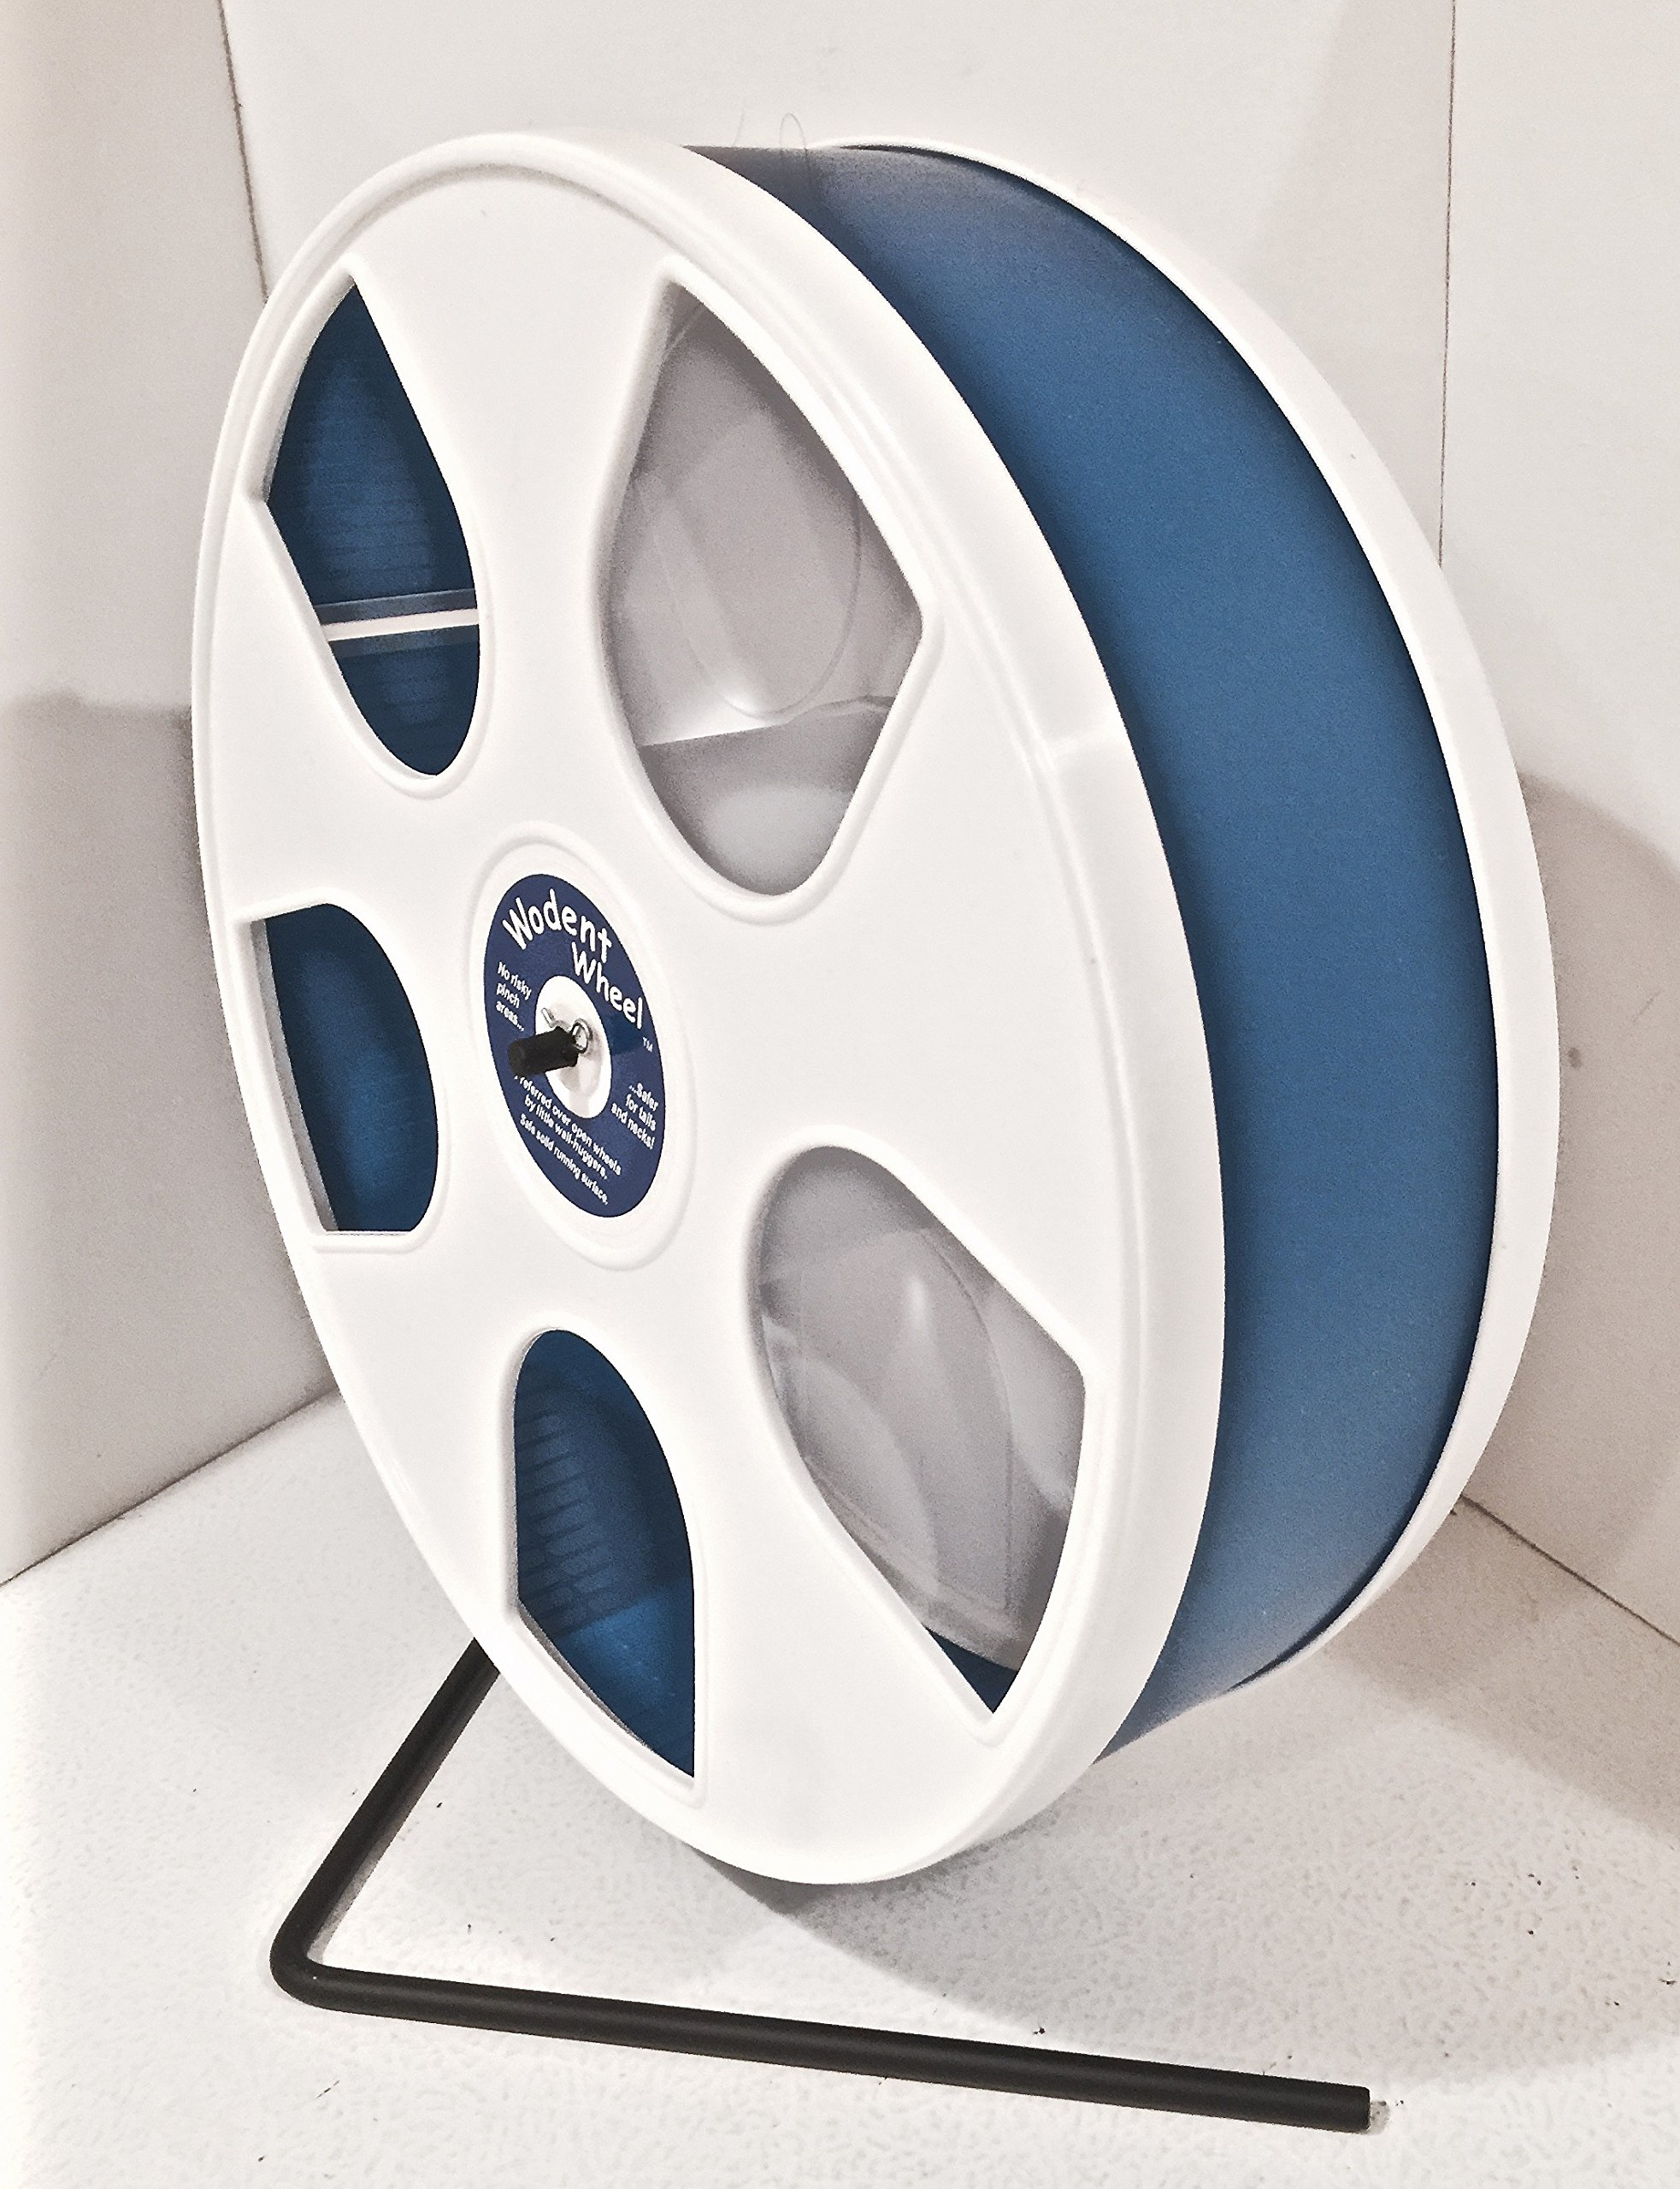 11'' WODENT WHEEL ASSEMBLED (WHITE W DK. BLUE) SAFETY SHIELD INCLUDED